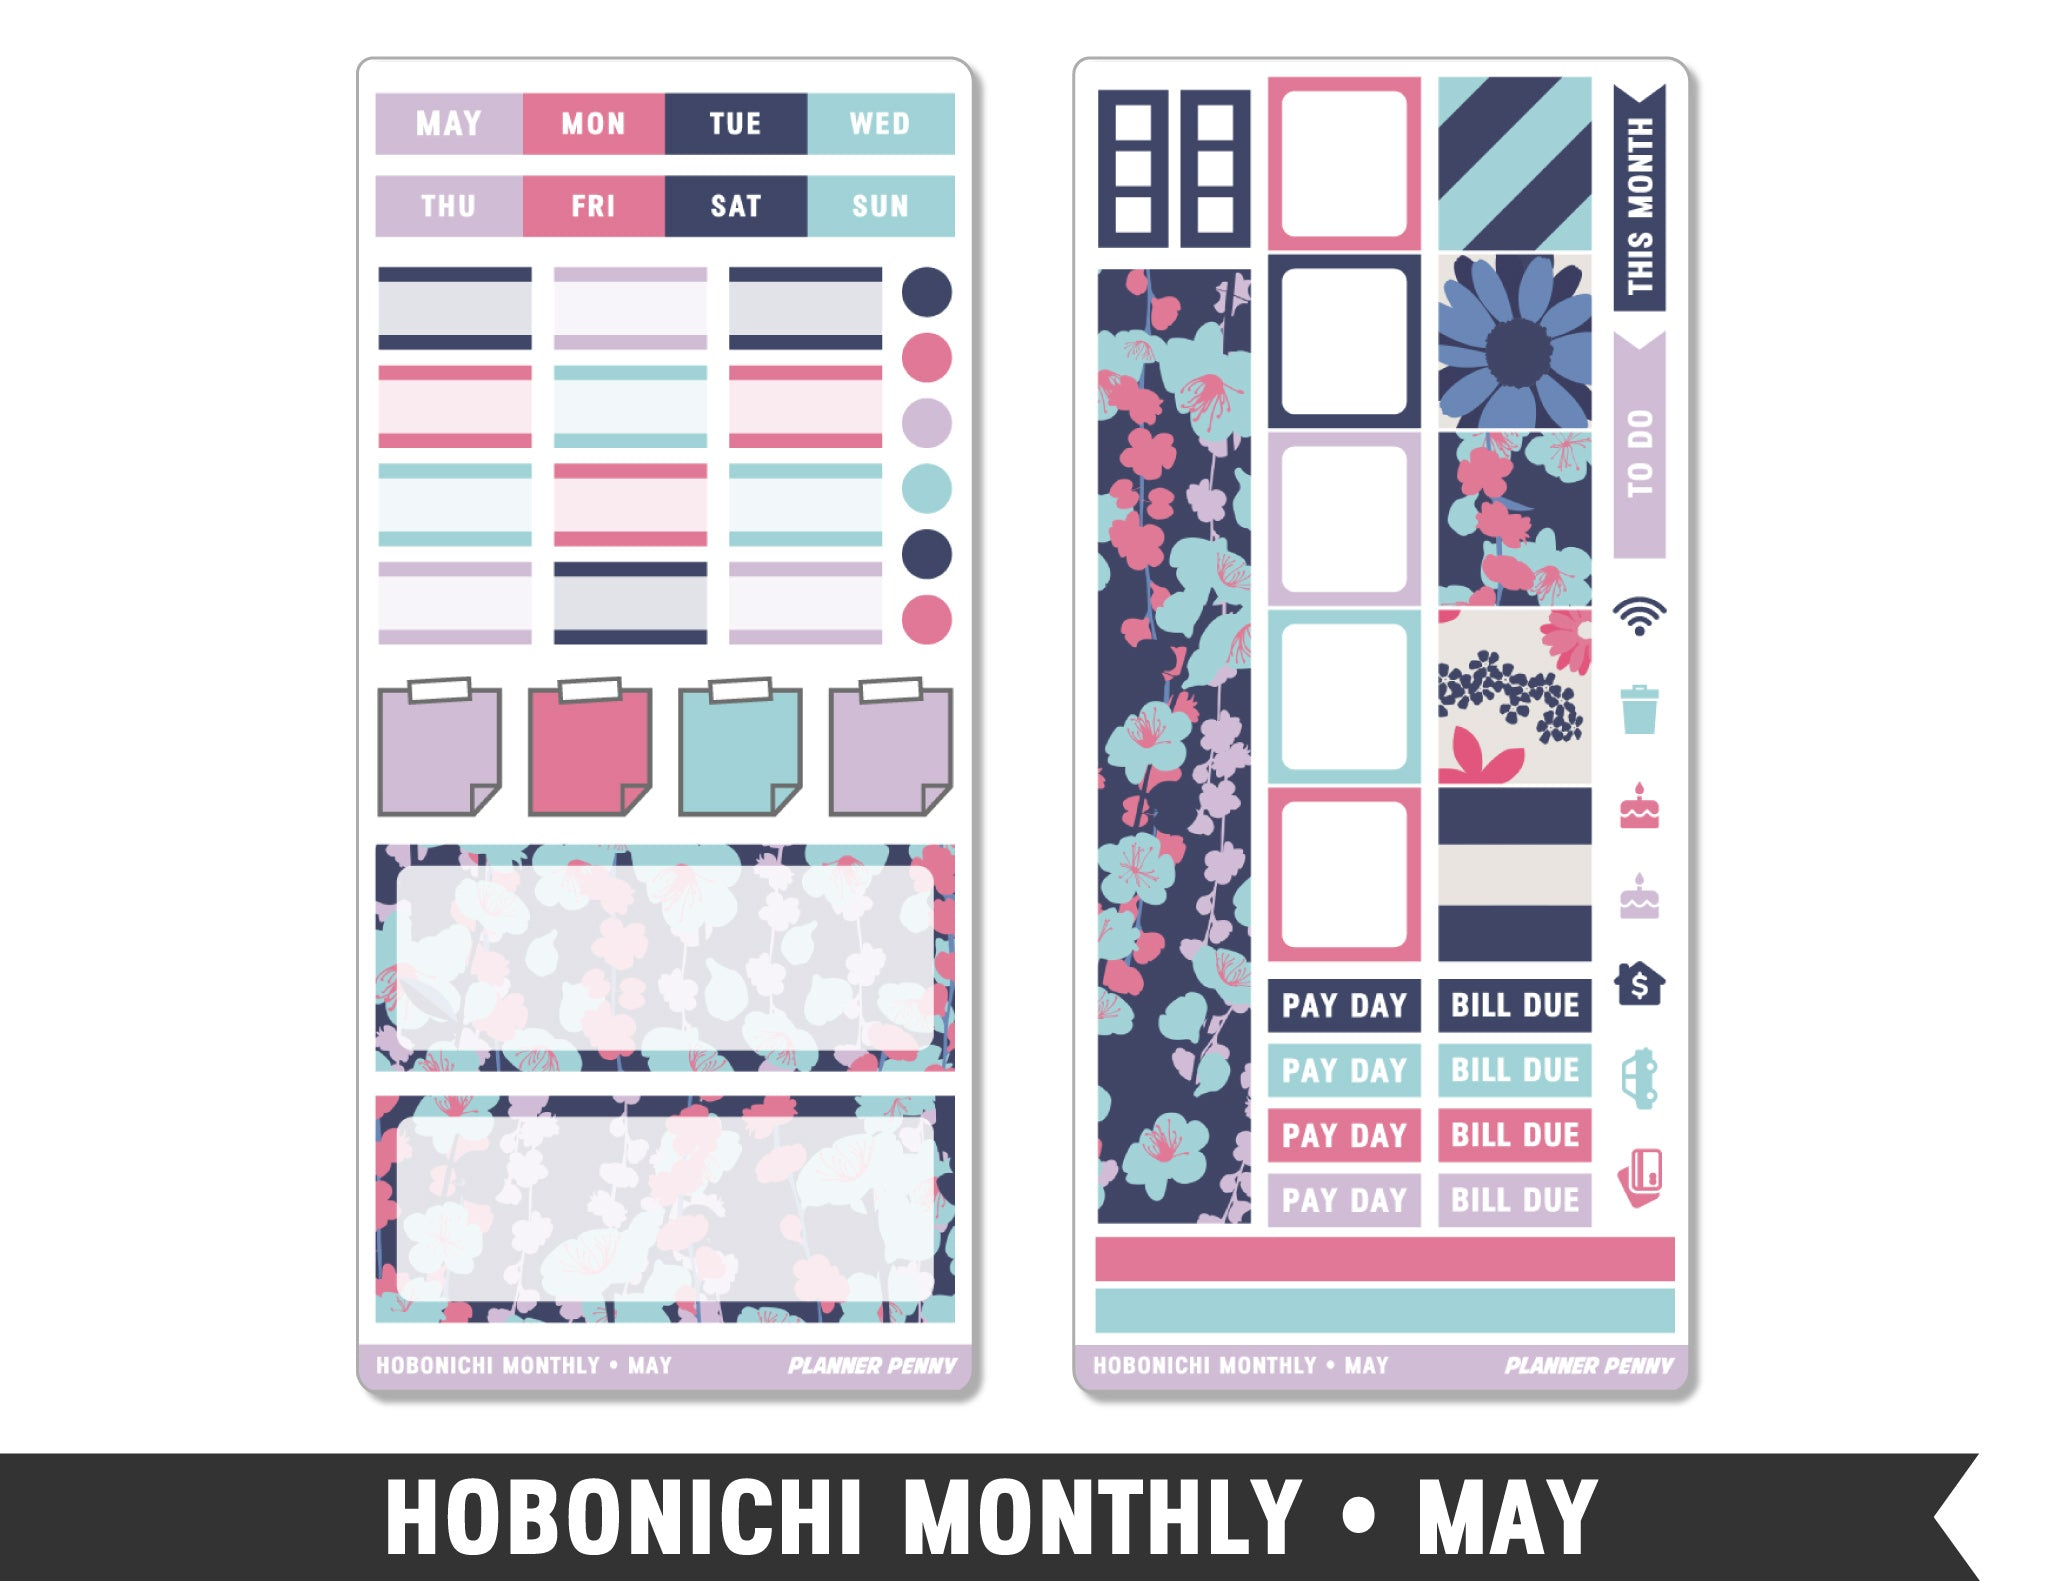 Hobonichi Monthly • May • Monthly Spread Planner Stickers - Planner Penny